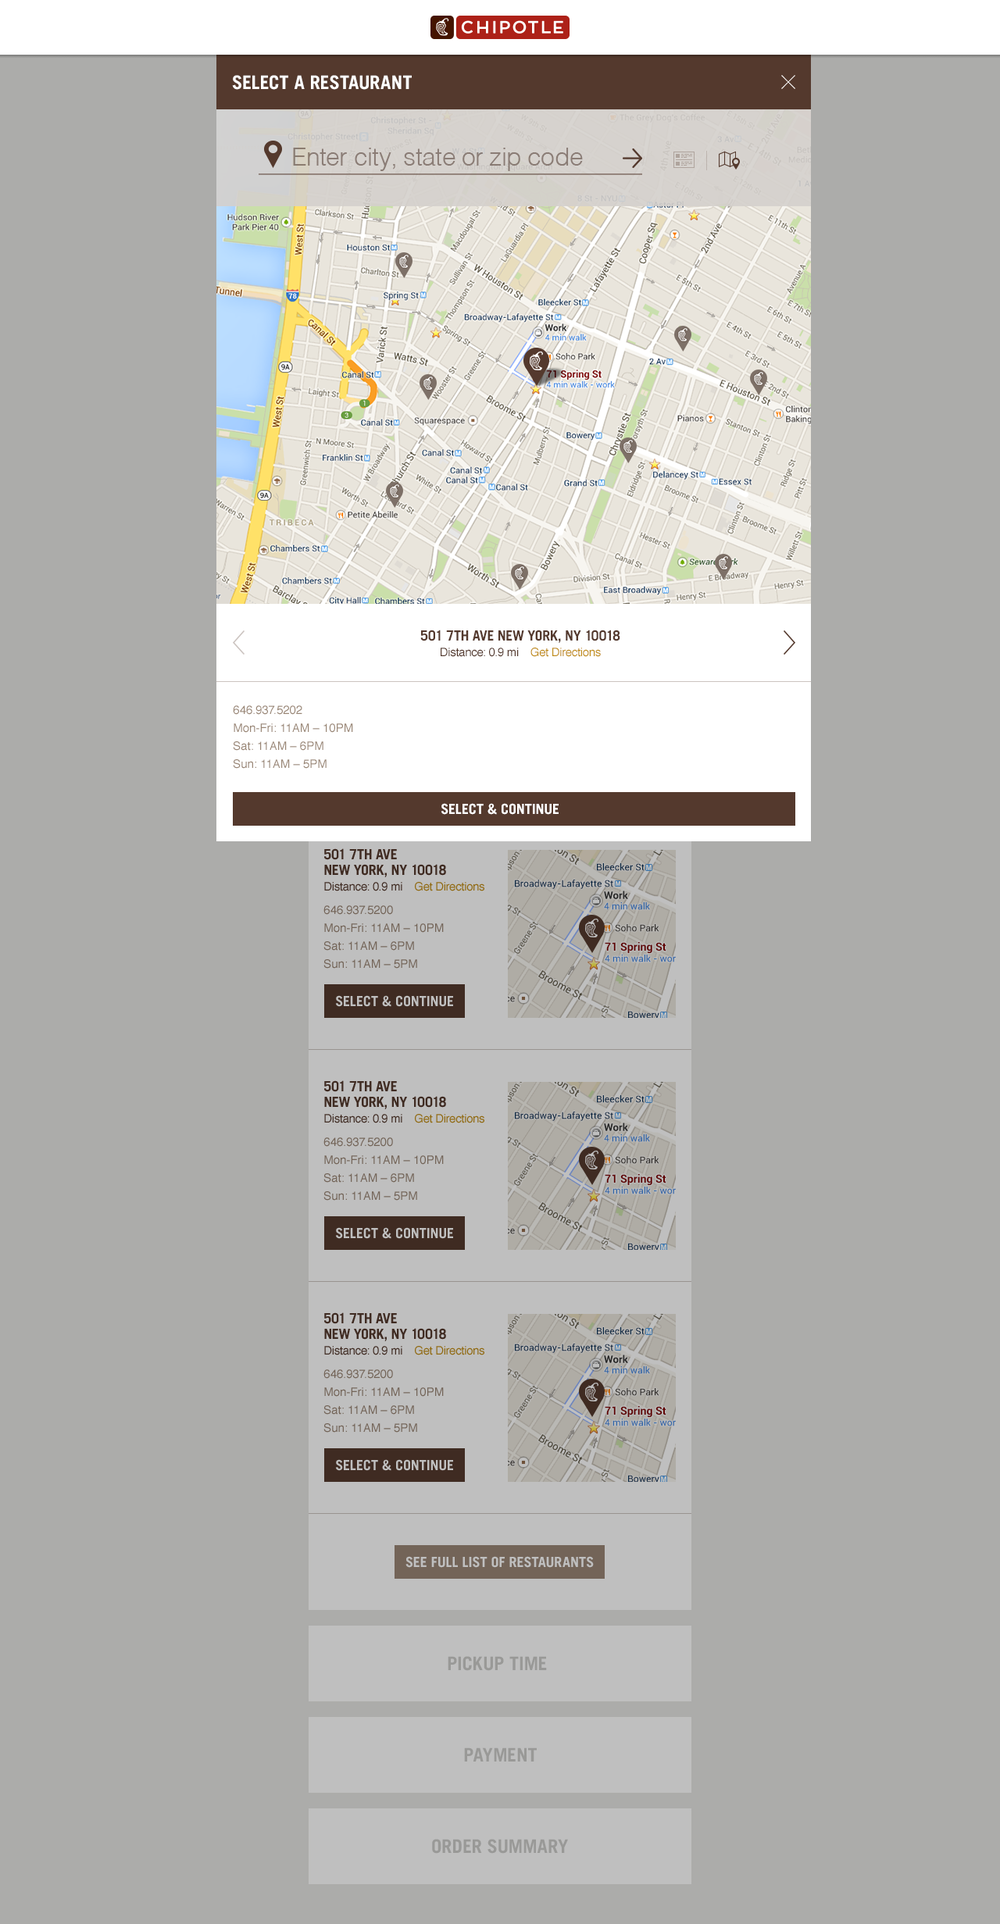 4a_ROO_GroupOrder_Checkout_Full_Restaurant_Modals_Map_Tab_Size.png